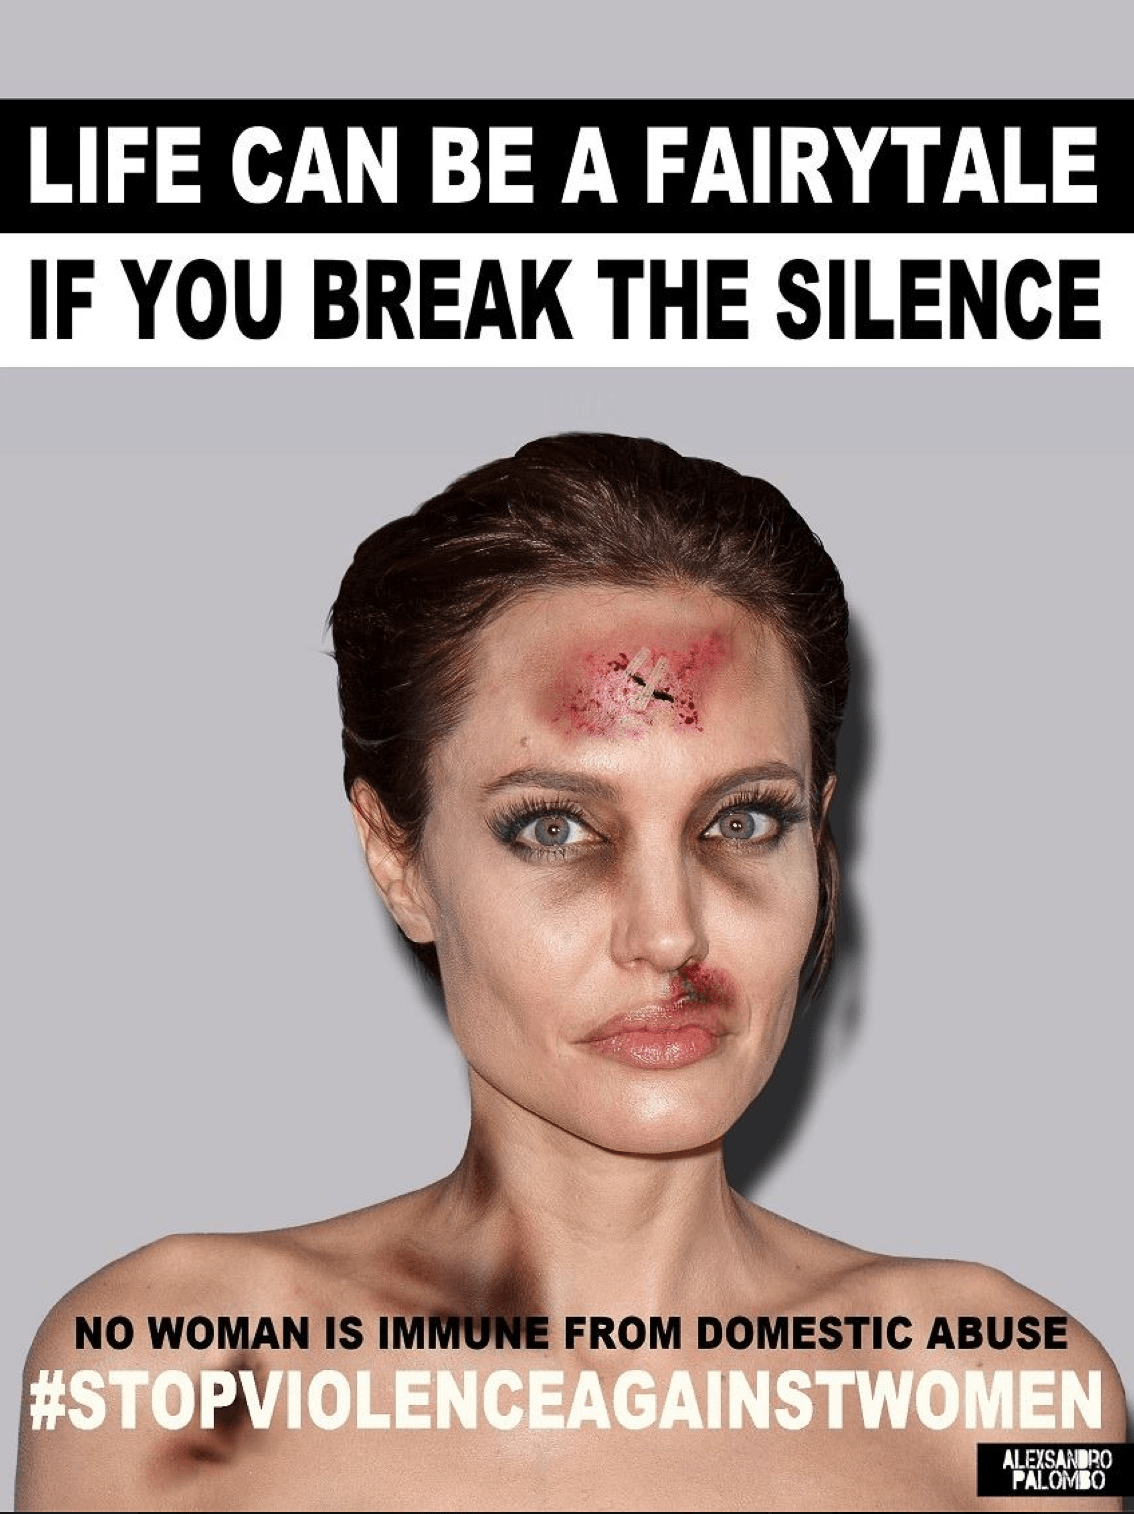 Angelina Jolie, Kendall Jenner, and Kim Kardashian Appear Bruised and Beaten in Jarring Anti-Violence Ads forecast